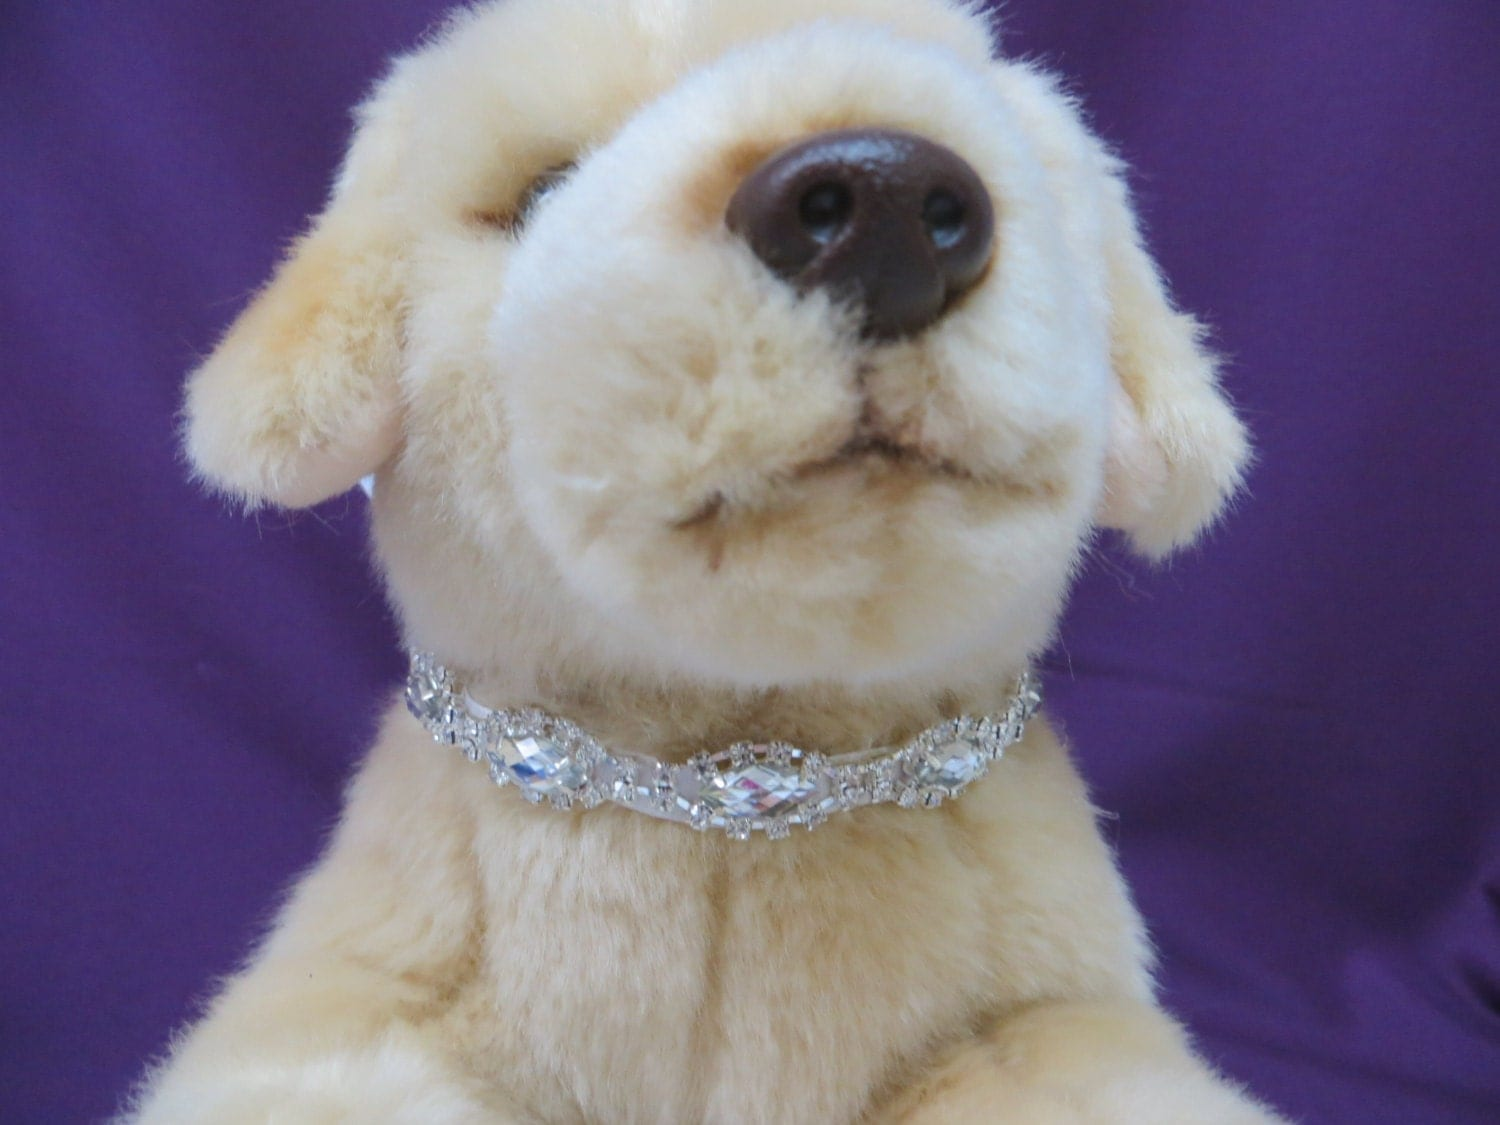 Pet Jewelry, Dog Necklace, Pet Necklace, Dog Collar, Pet Collar, Rhinestone Collar, Pet Costume, Dog Costume